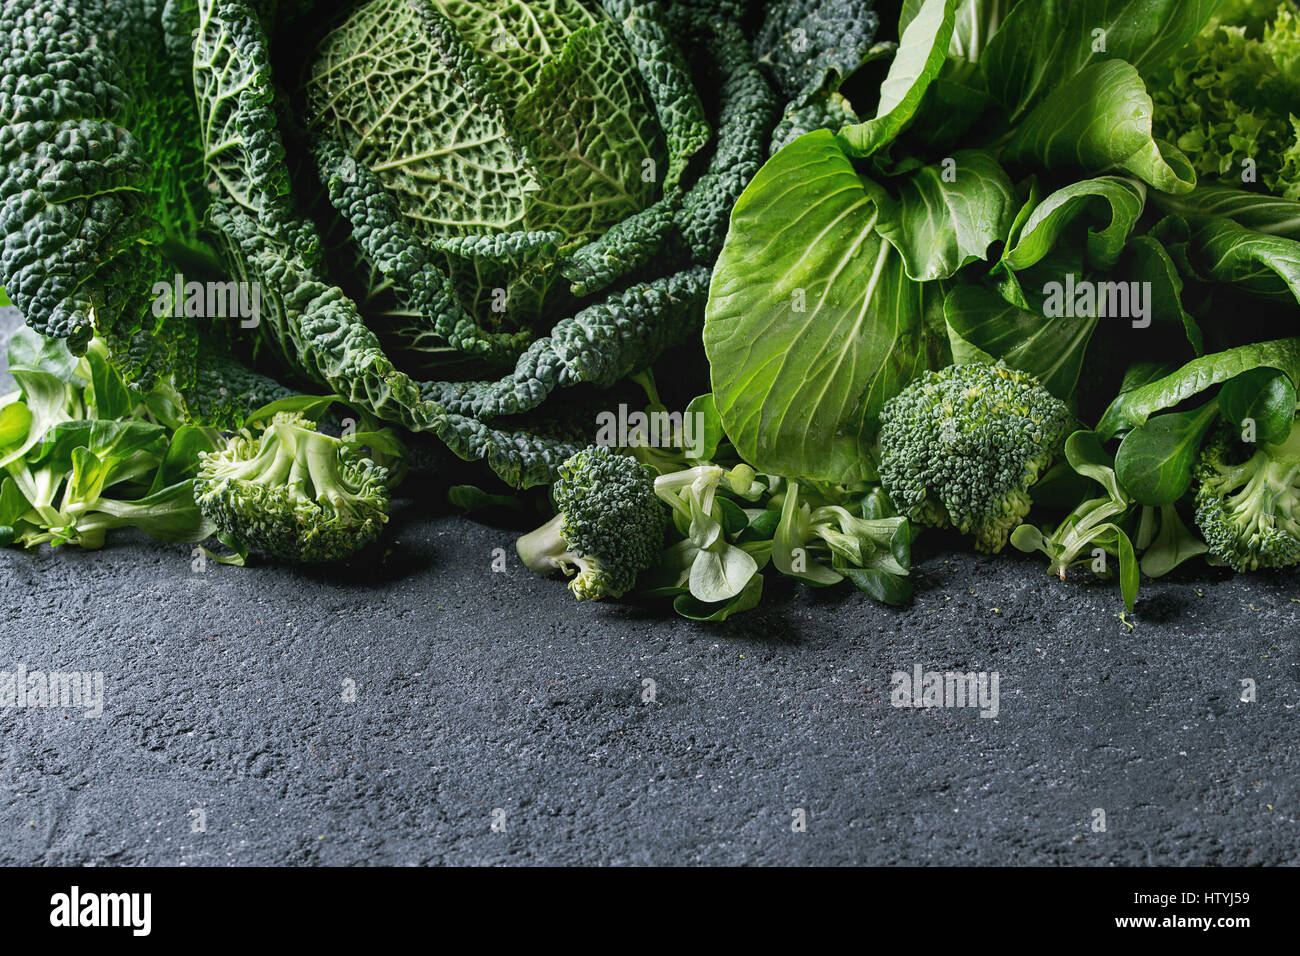 Variety of raw green vegetables salads, lettuce, bok choy, corn, broccoli, savoy cabbage as frame over black stone - Stock Image